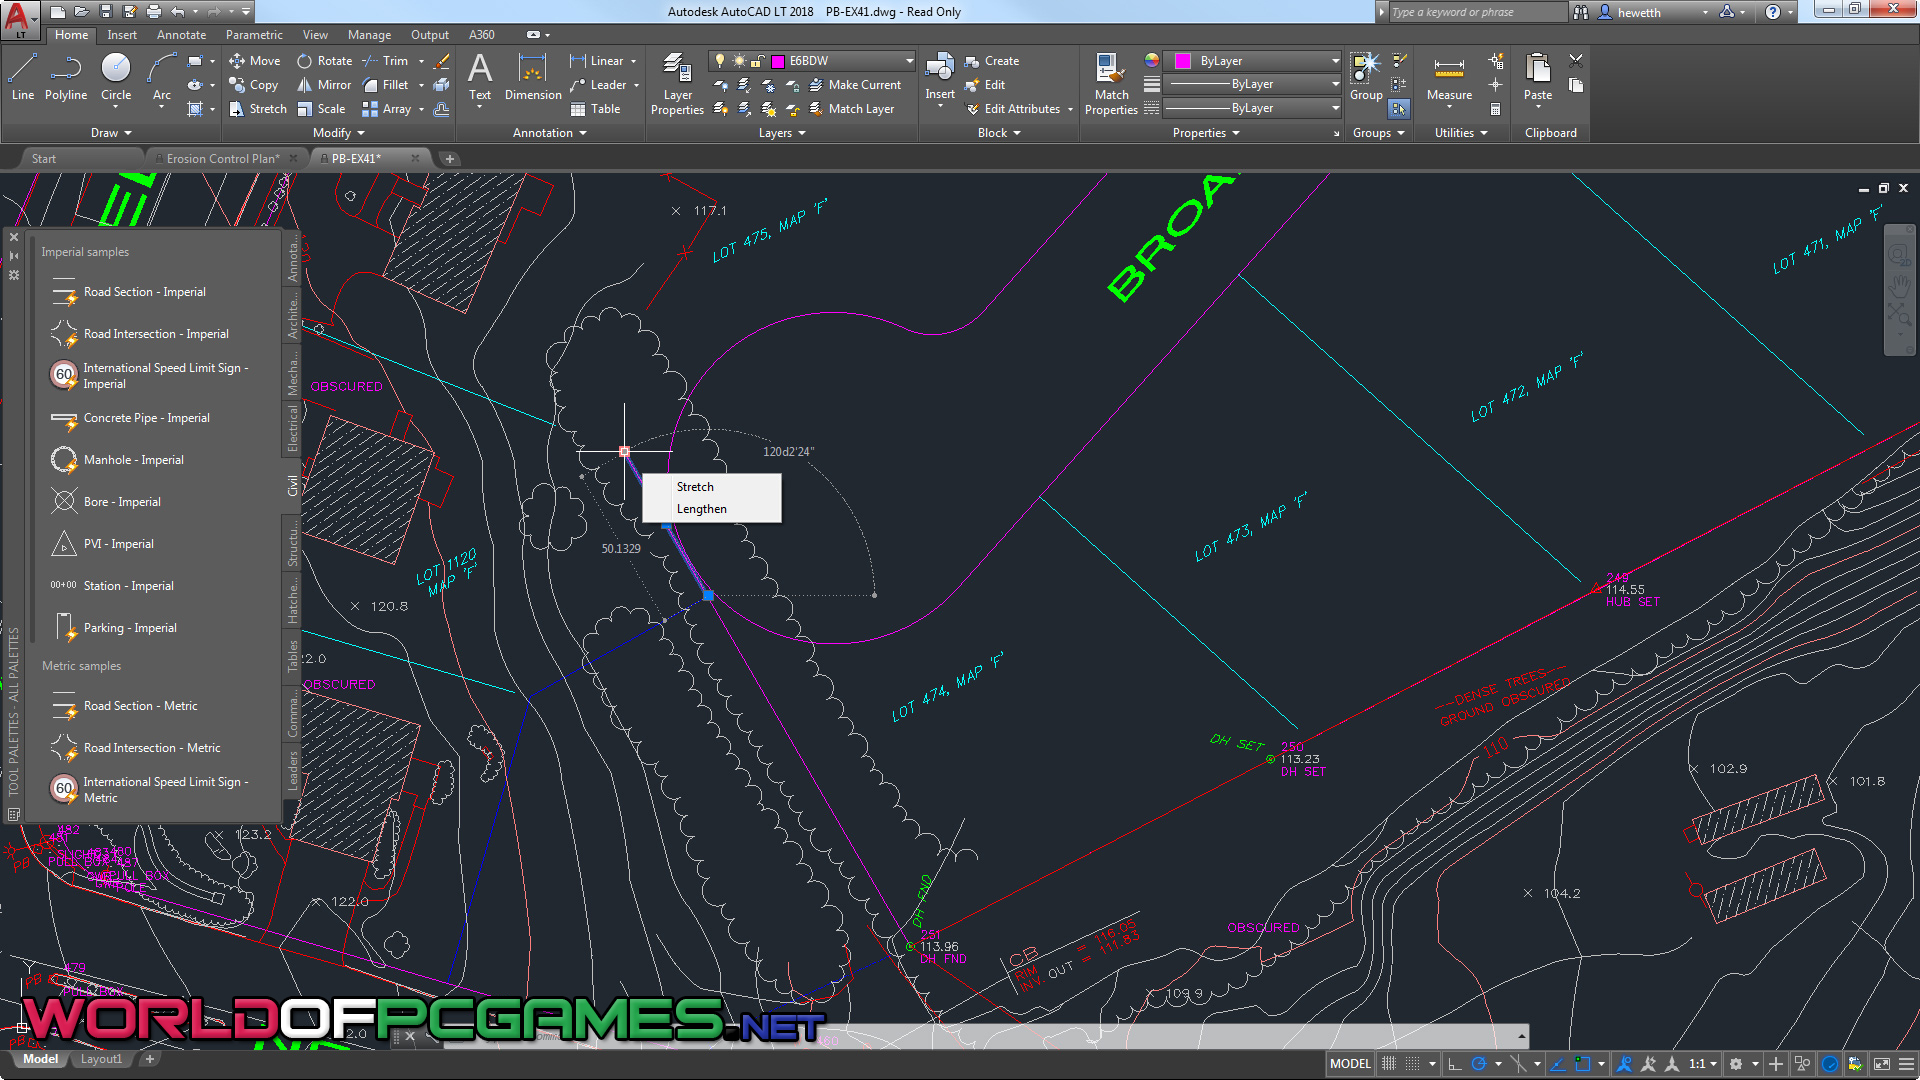 Autodesk autocad 2017 for mac free download dmg autodesk autocad 2017 for mac free download by worldofpcgames gumiabroncs Gallery